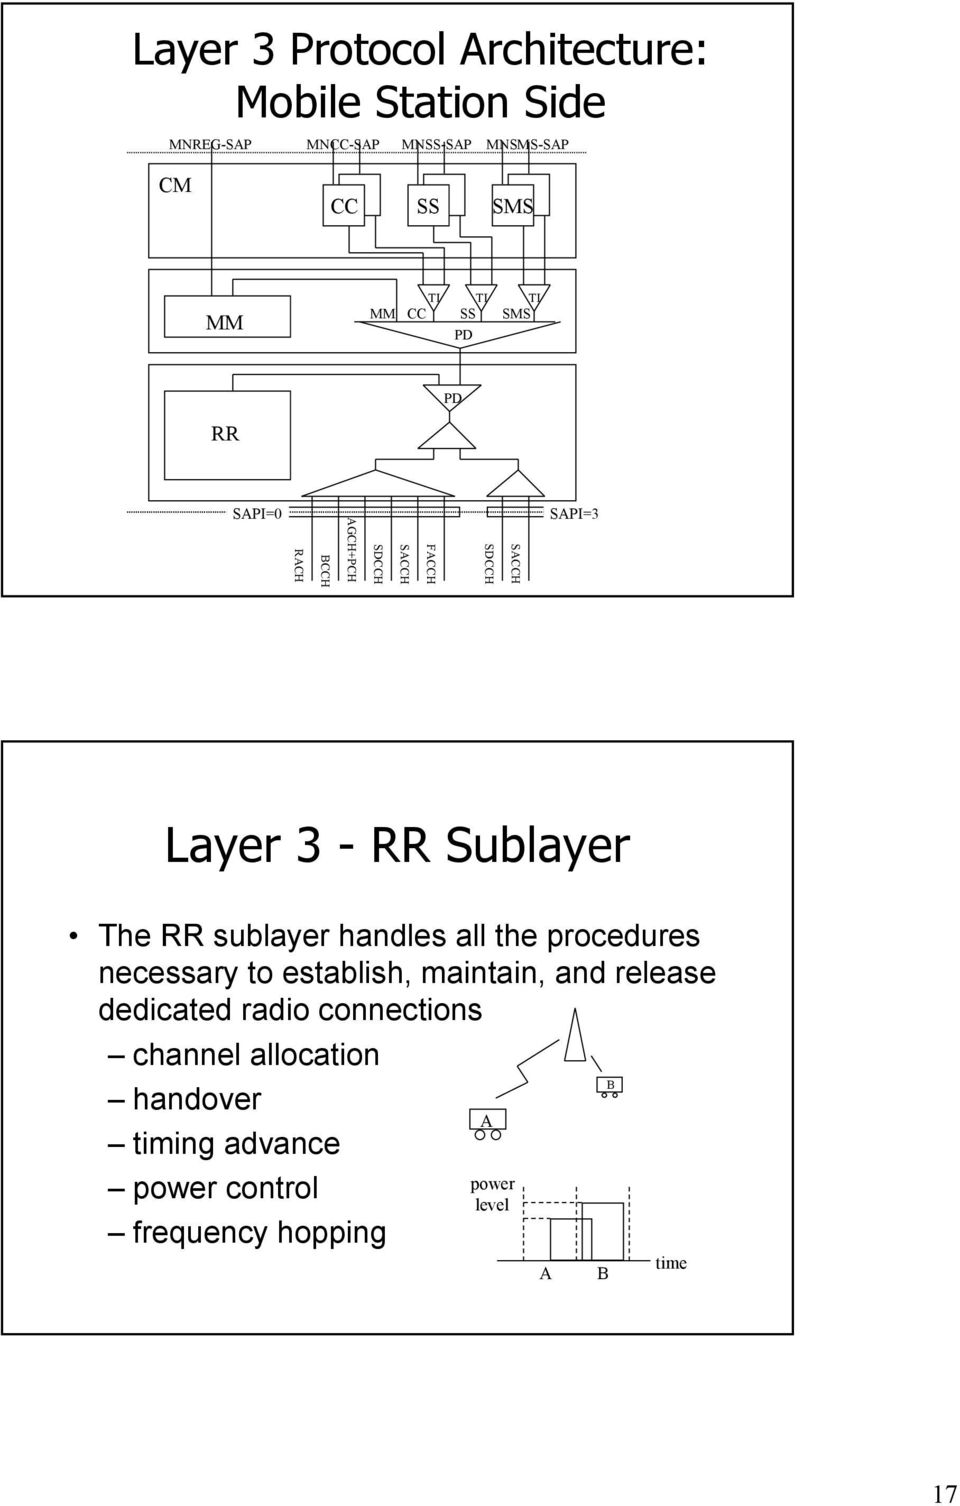 RR sublayer handles all the procedures necessary to establish, maintain, and release dedicated radio